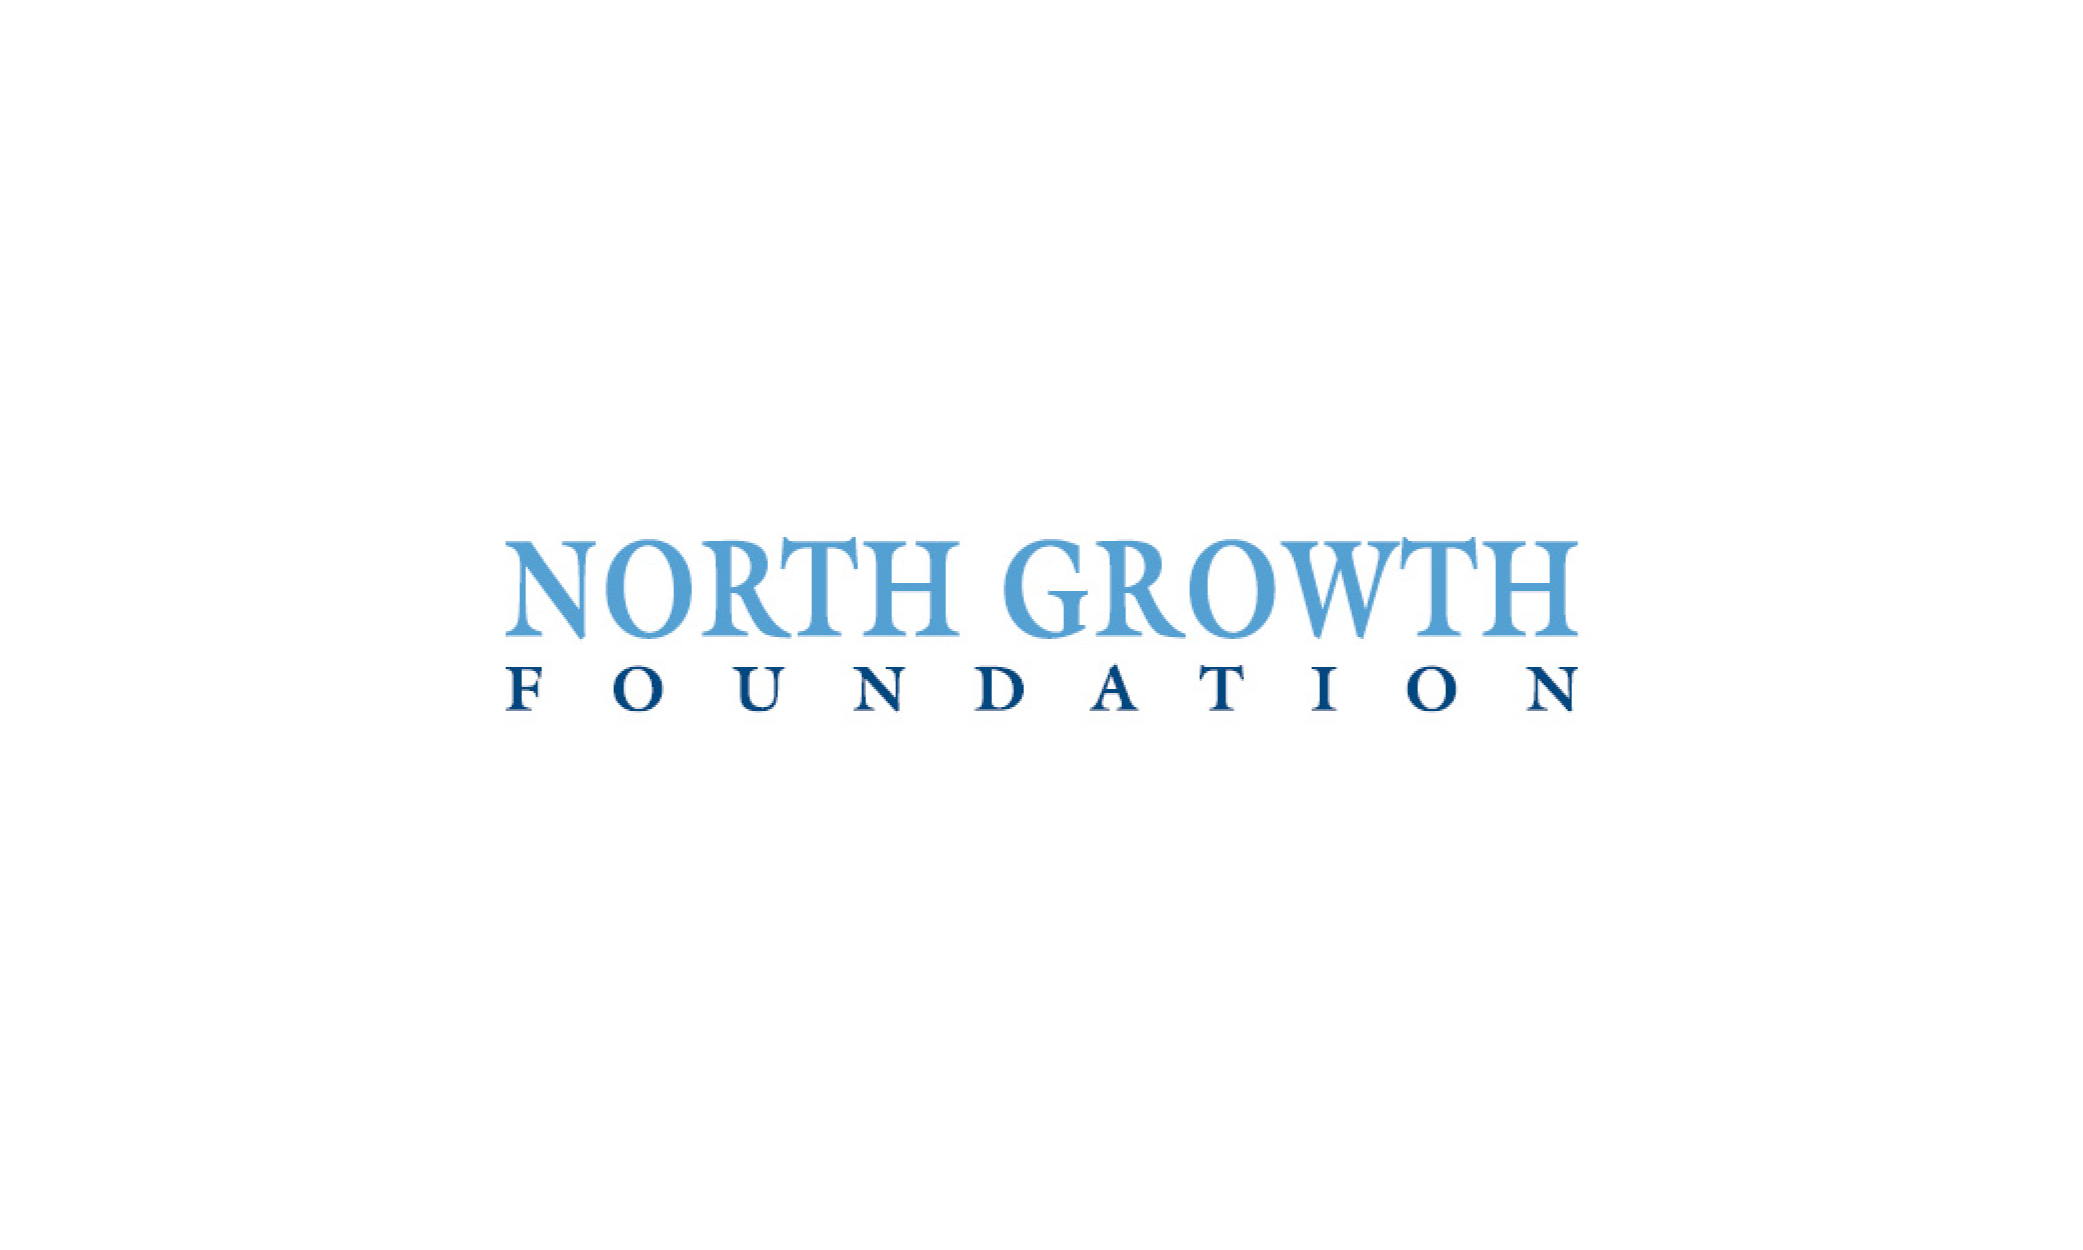 Northgrowth Foundation White bkgd.png